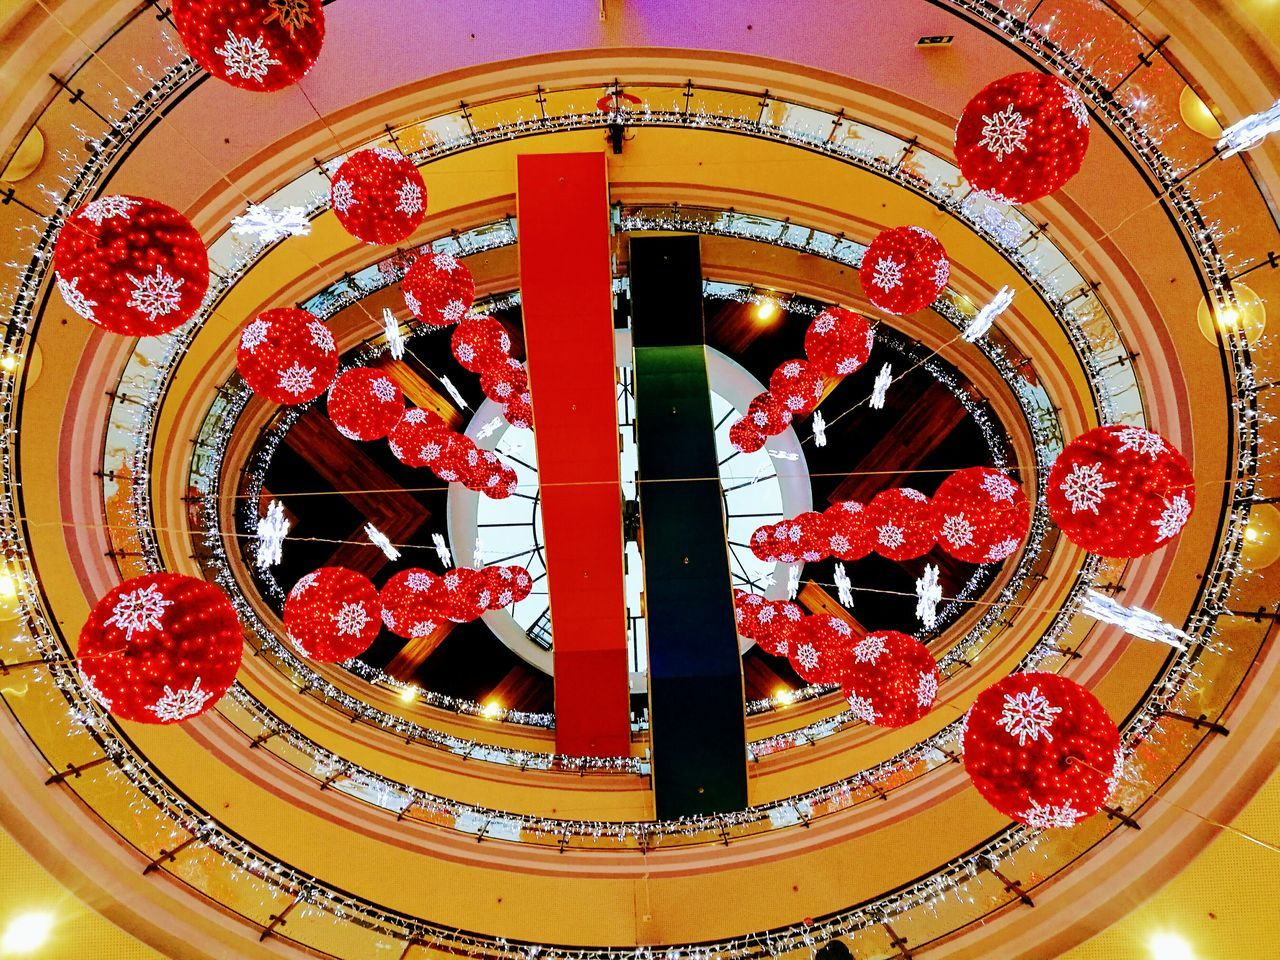 Gambling No People Gambling Chip Day Red Night Savonlinna Opera Festival Christmas Lights Finland_photolovers Ceiling Finland♥ Finlandiaa Finlandia Helsinki Finland Helsinki Kamppi Finlandlovers Helsinki,finland Helsinki Central Railway Station Christmas Tree Close-up Low Angle View Luxury Arts Culture And Entertainment Red Indoors